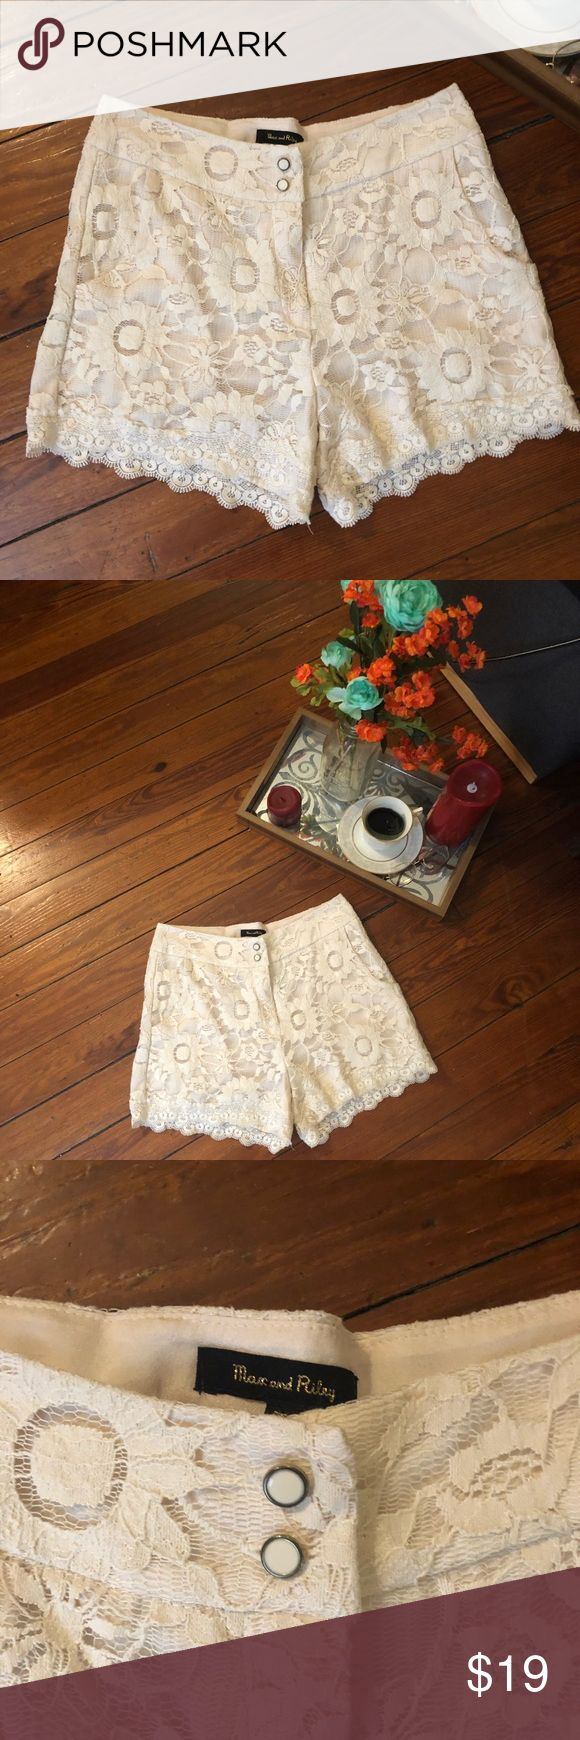 """Max & Riley Sz m cream lace scalloped shorts This is for a gorgeous pair of cream lace shorts in a size medium. They are practically new. No sign of wear. These have a great high waist. Pockets ✔️. Waist 28"""", hips 34, inseam 11"""". max & Riley Shorts"""